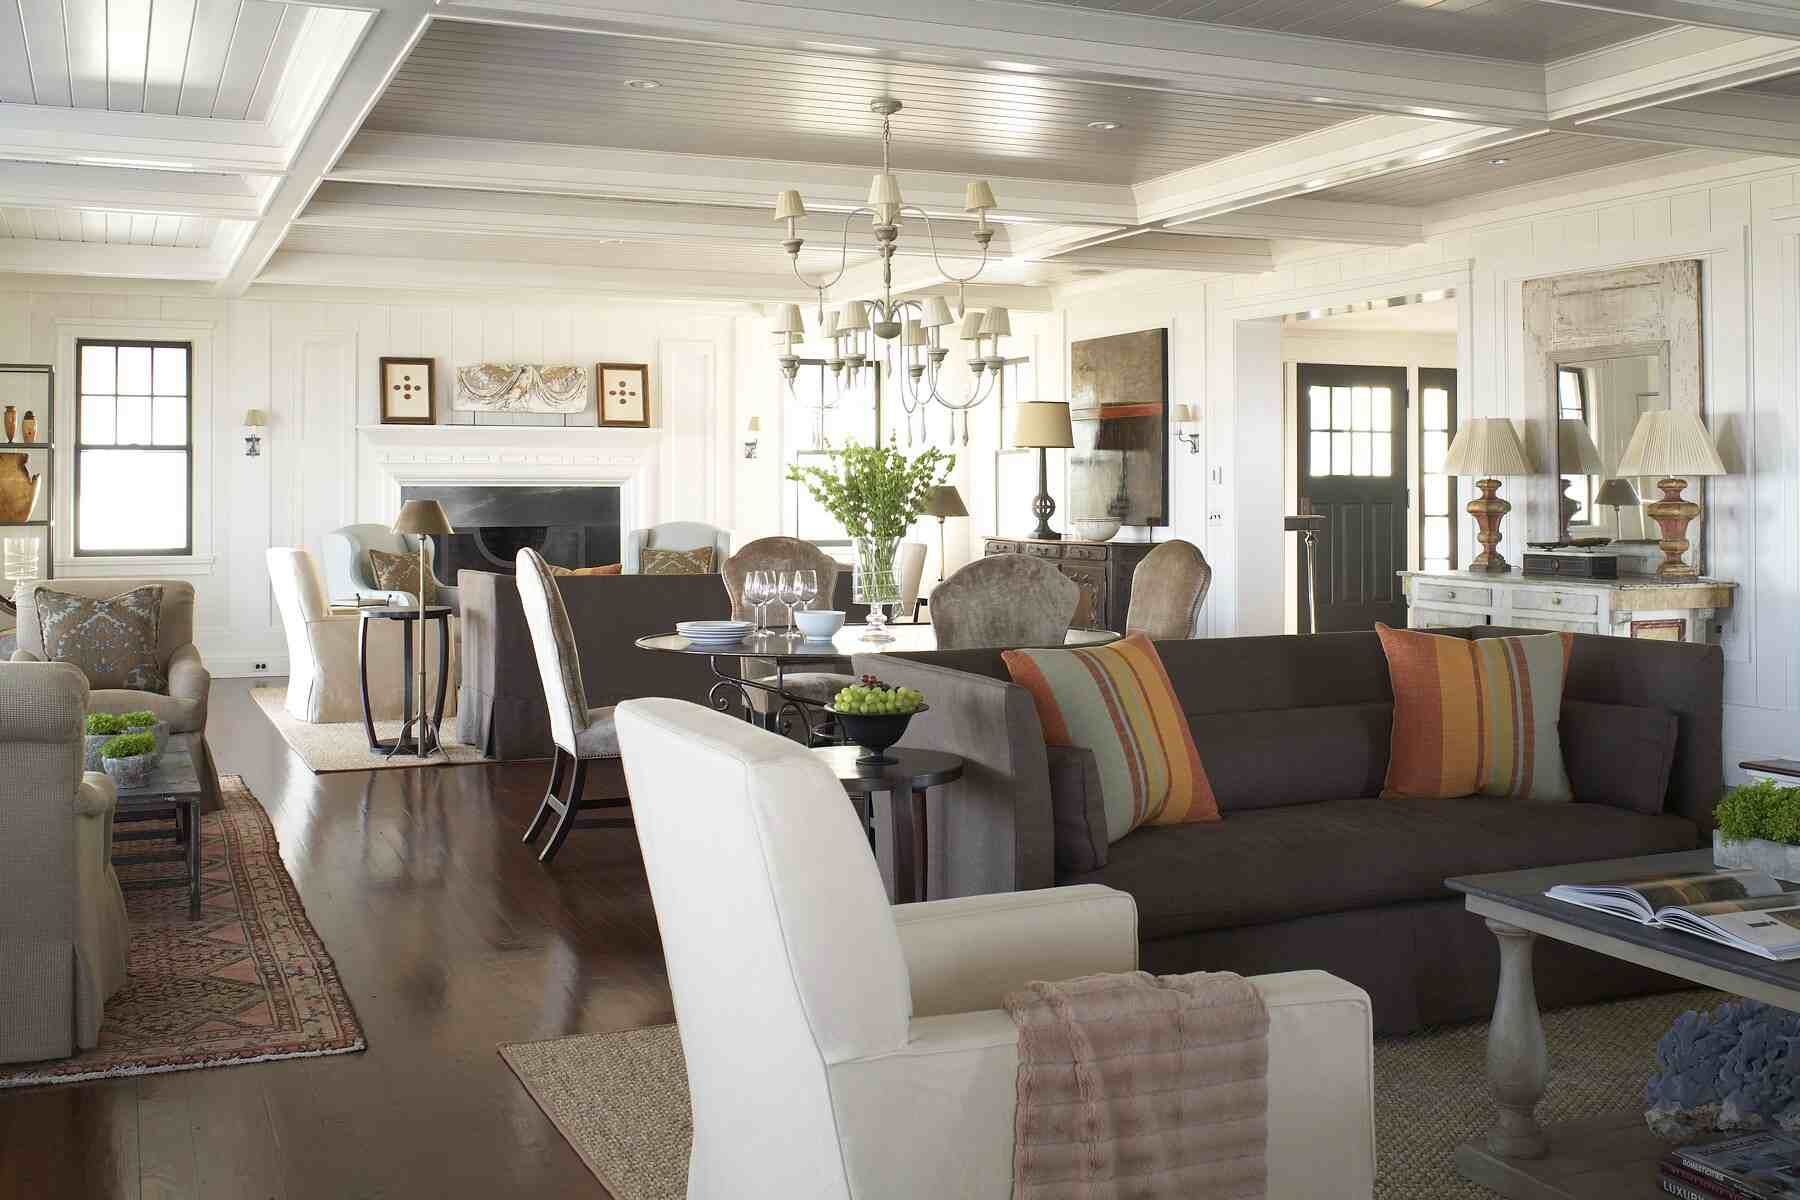 02Haslam | Nantucket style, Interiors and House